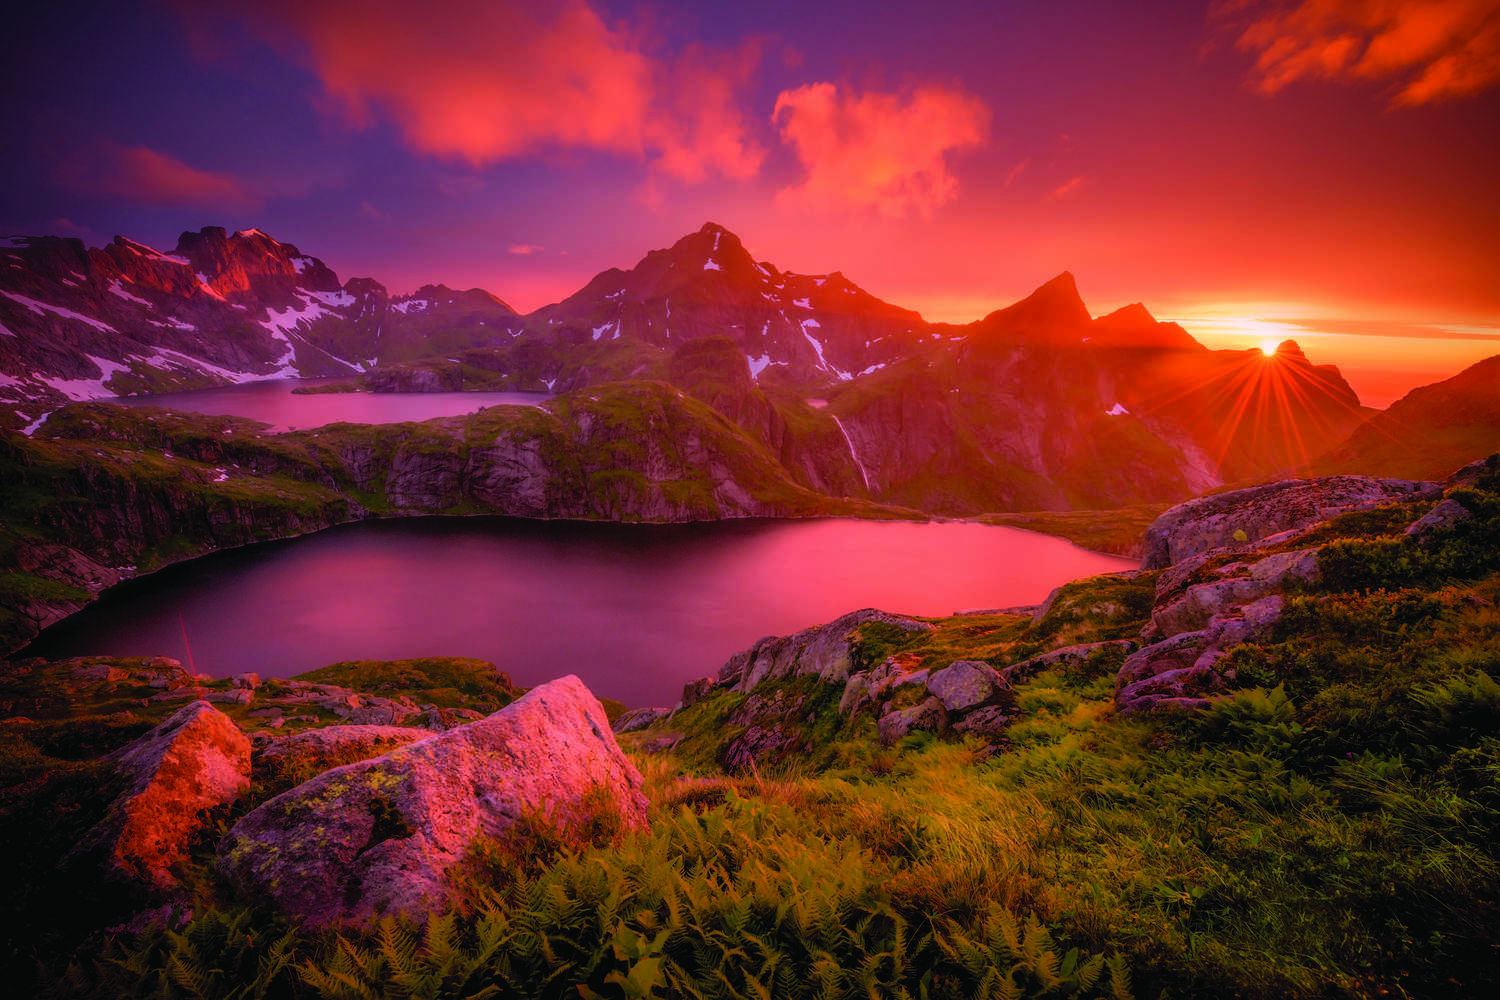 An amazing sunset over two lakes and a waterfall.